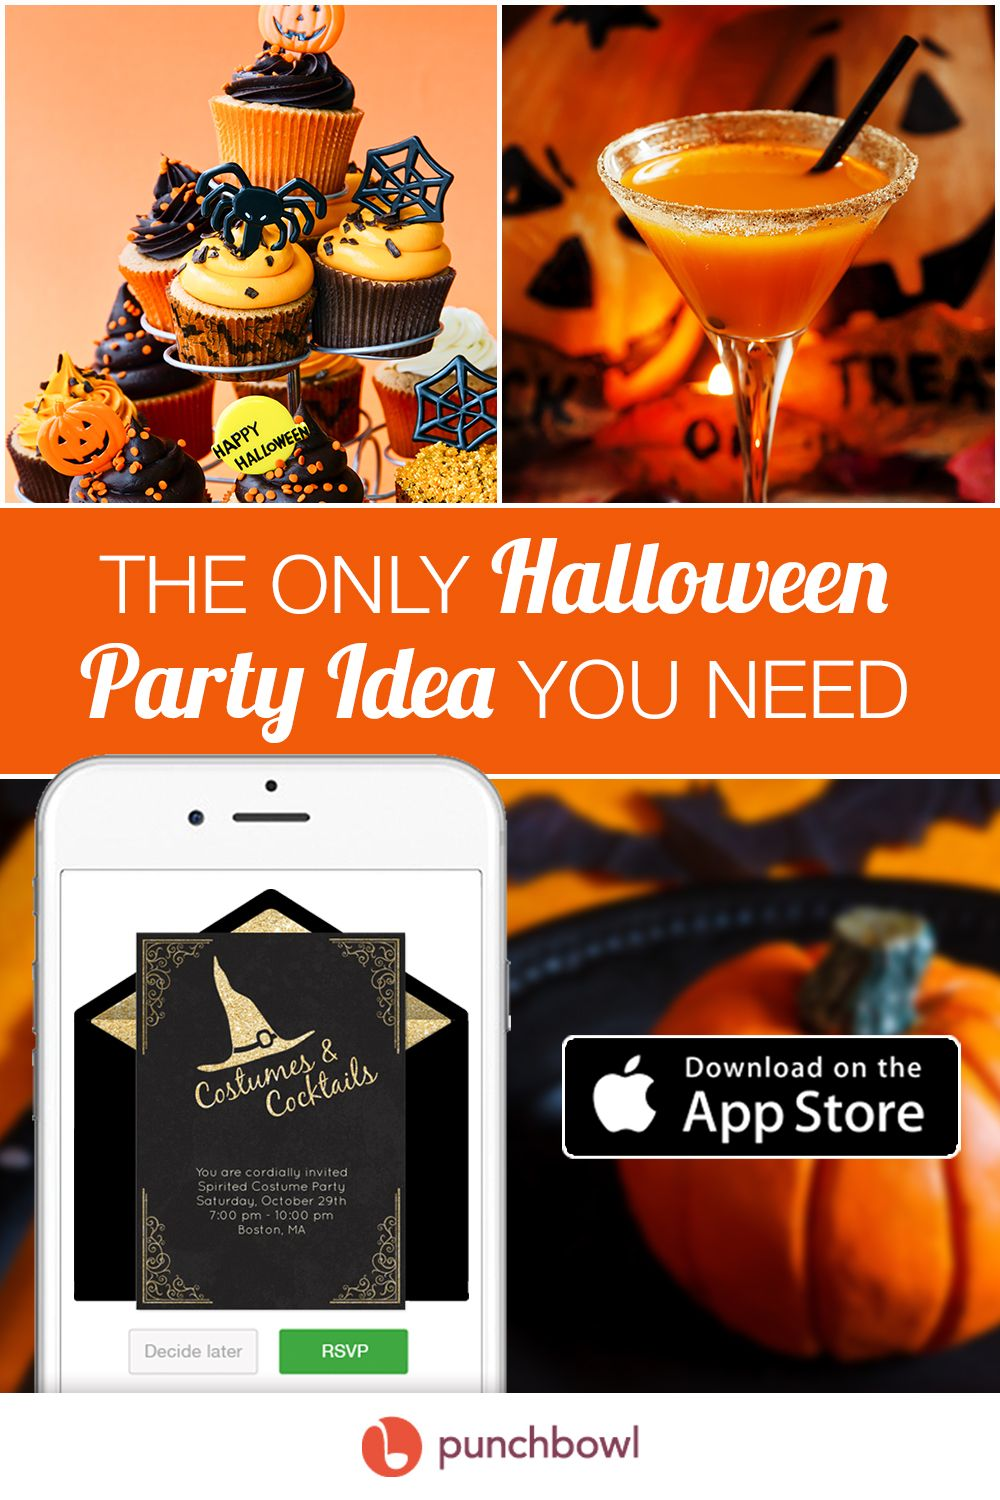 Send free Halloween invitations by text message right from